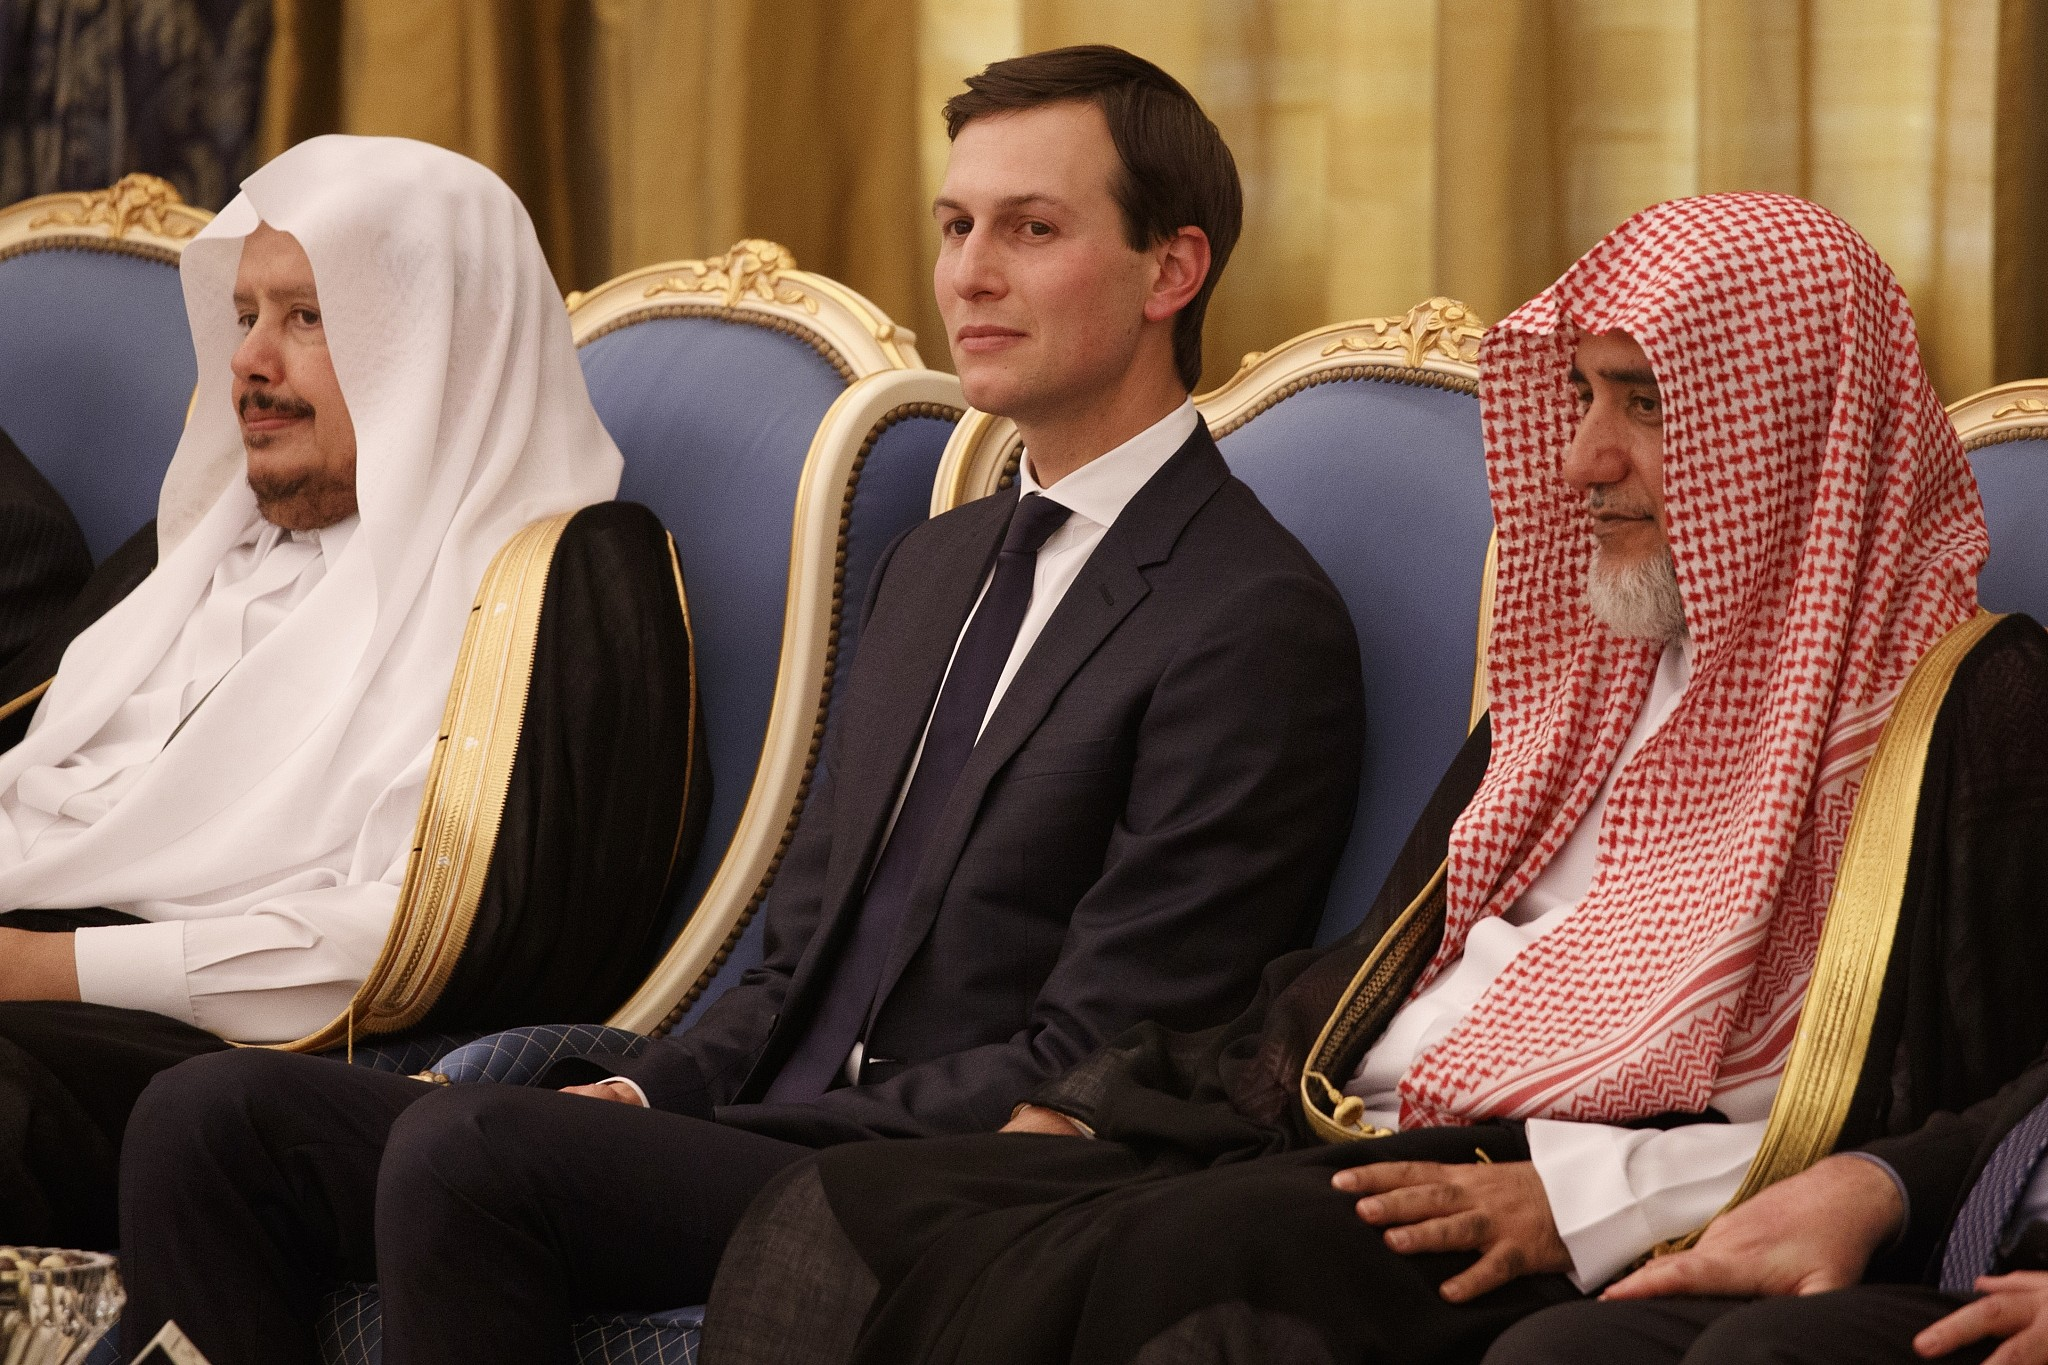 Jared Kushner made an unannounced trip to Saudi Arabia